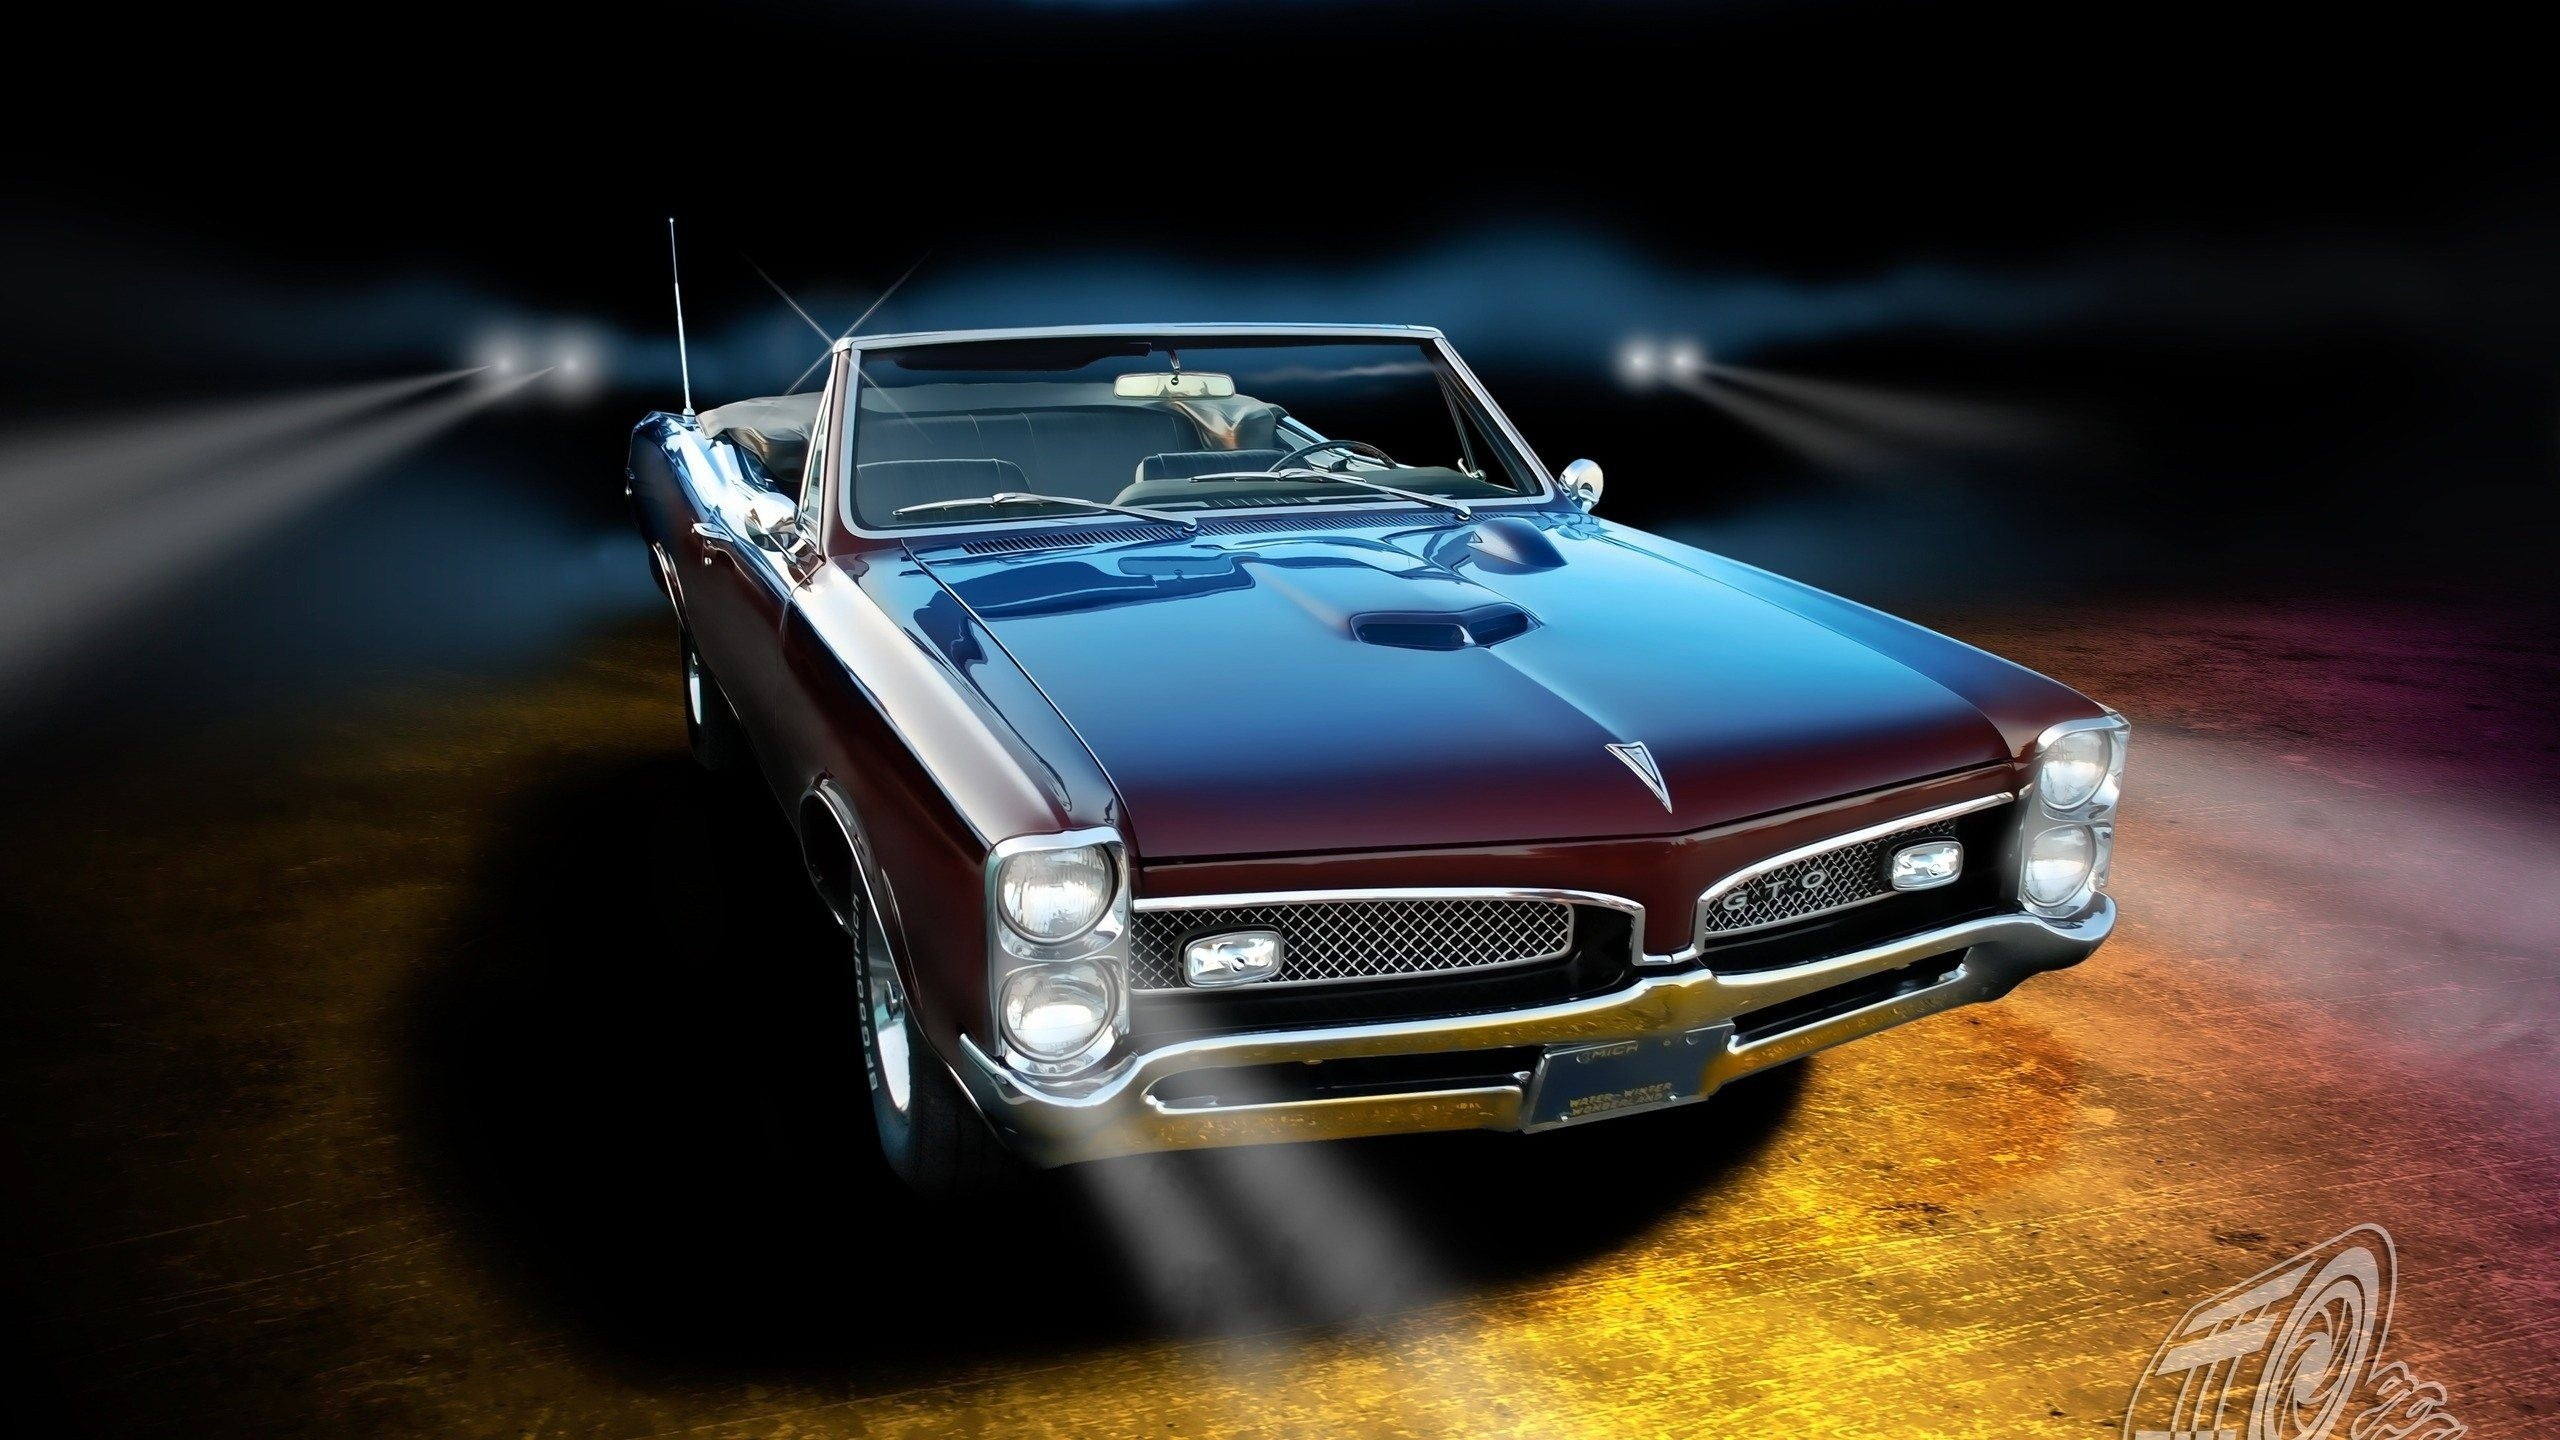 Cars Wallpapers: HD Wallpapers Classic Cars (72+ Images